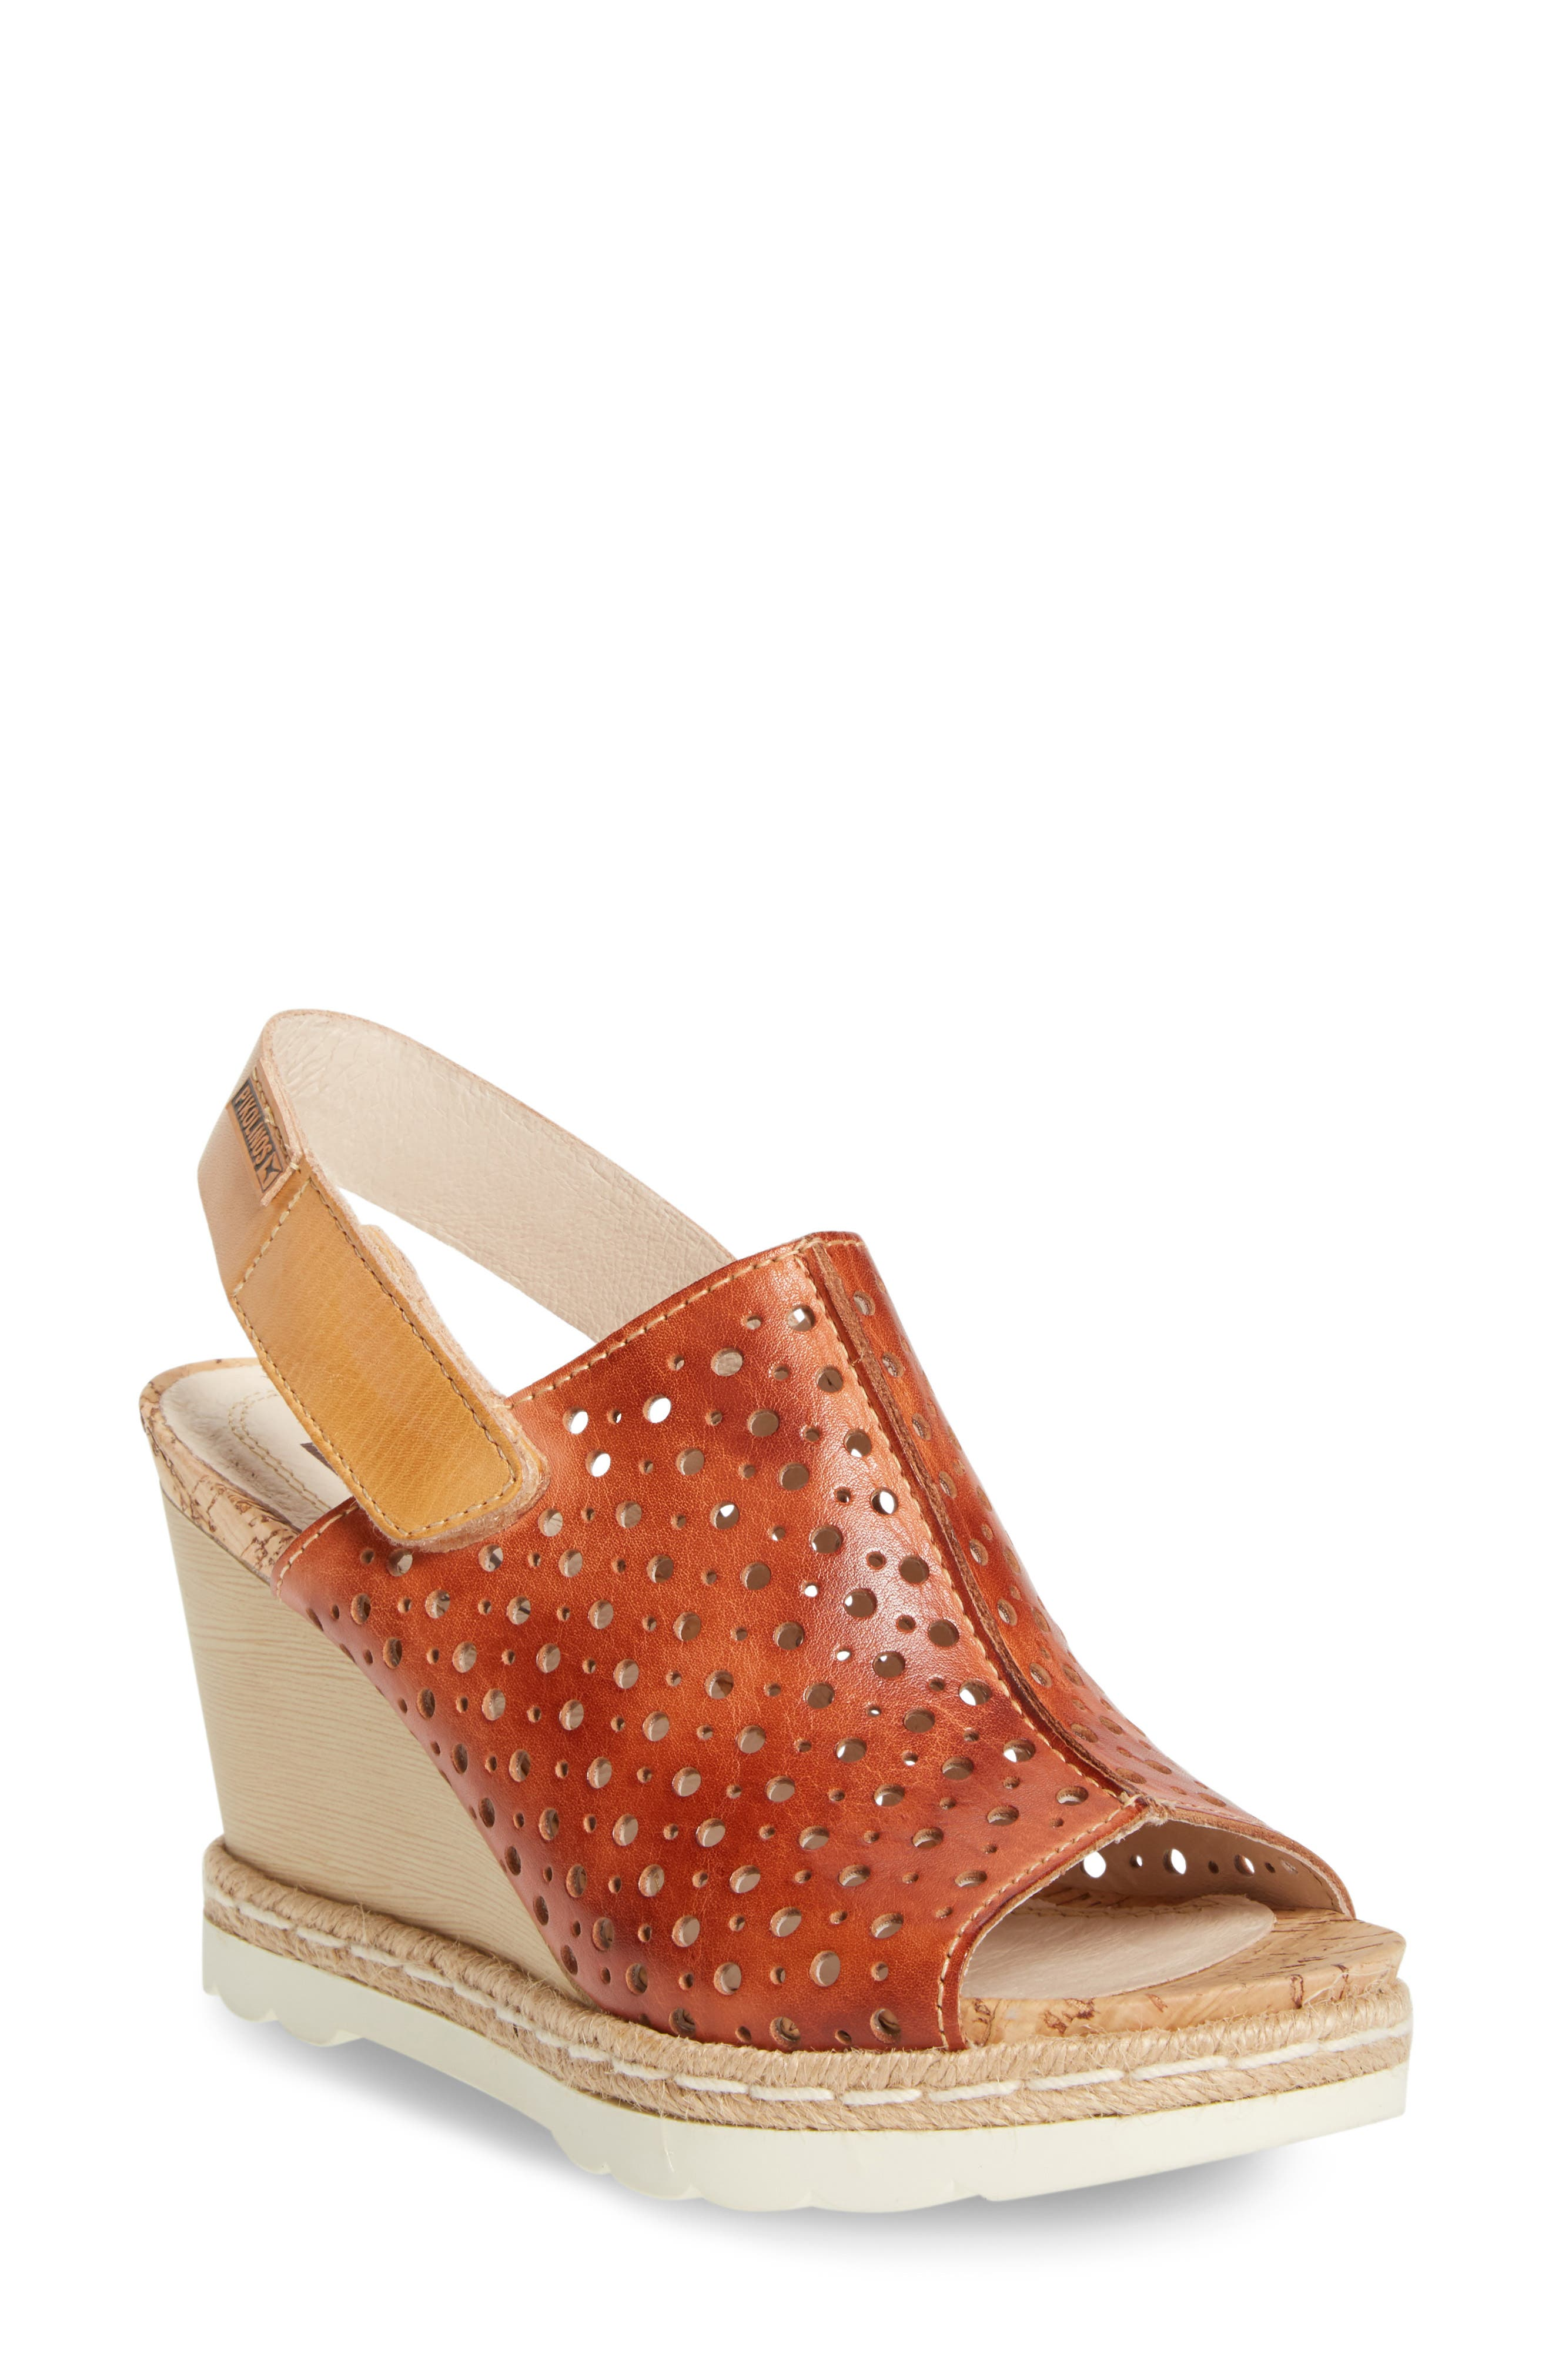 PIKOLINOS Bali Wedge Sandal (Women)